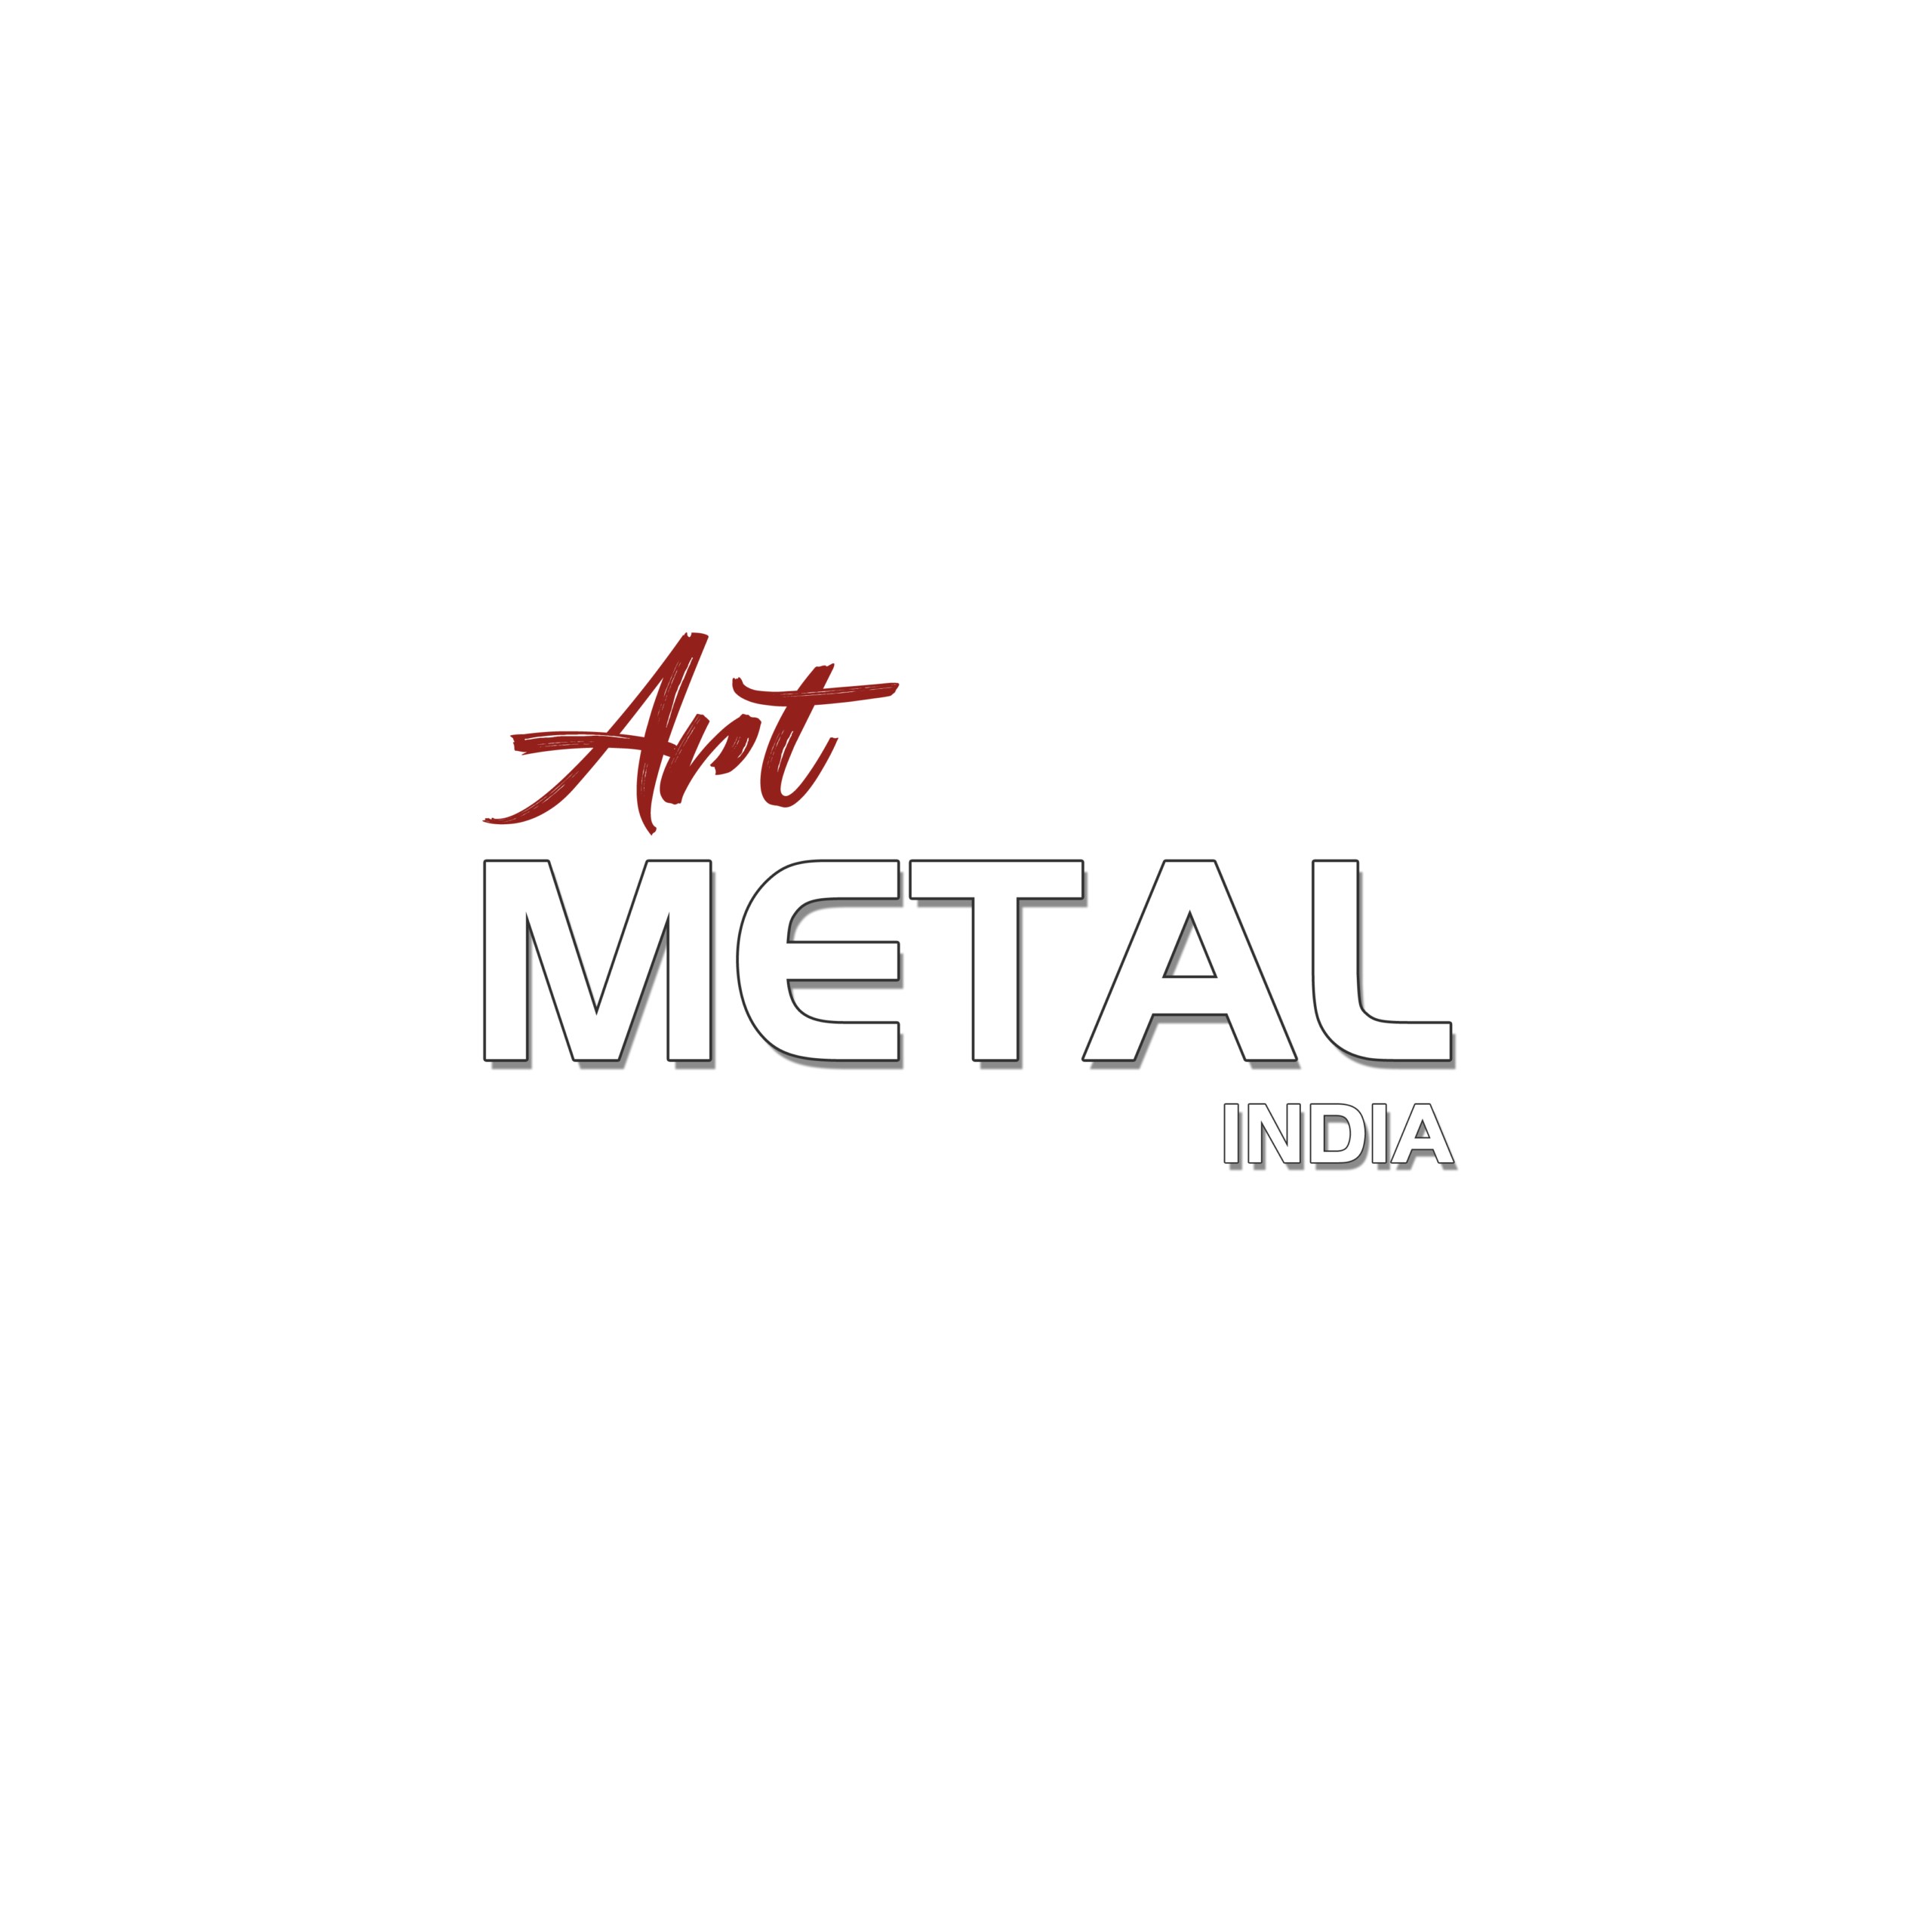 Artmetal-india-copy-scaled